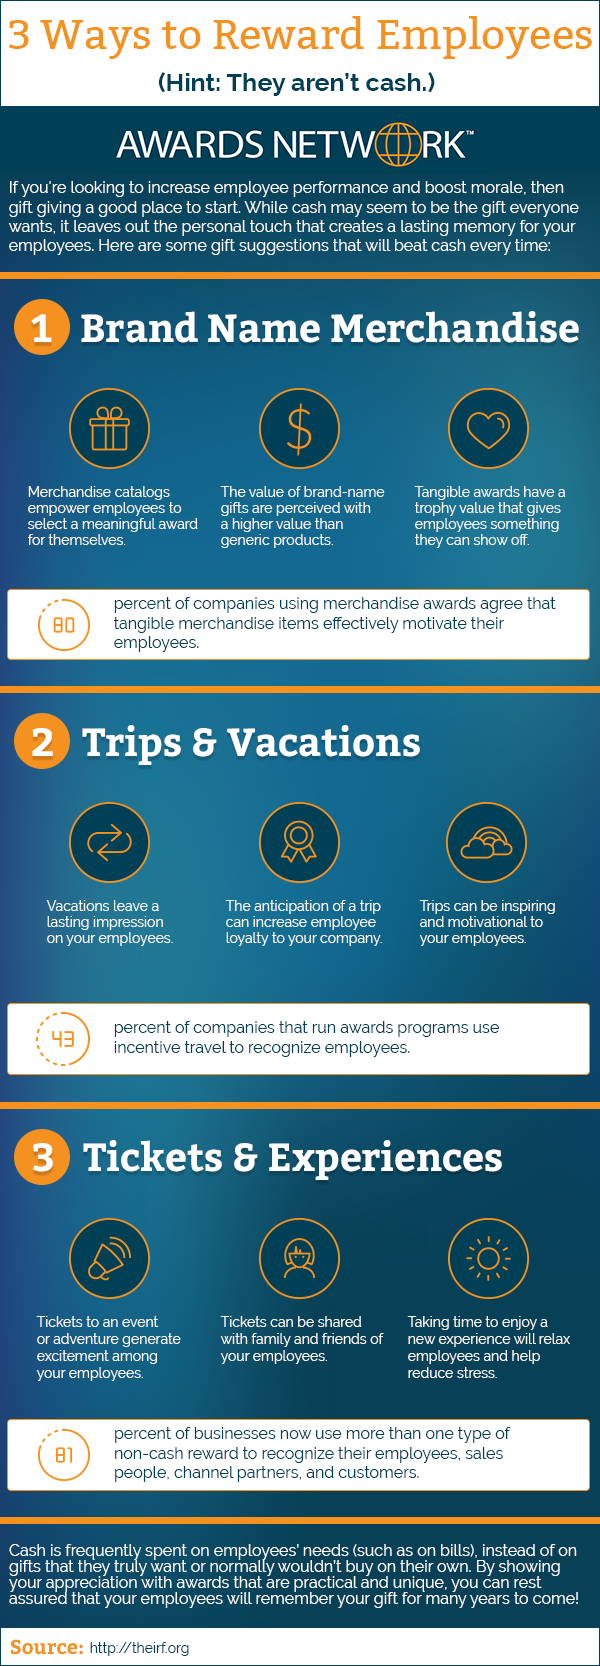 3 Ways to Reward Employees that aren't Cash - Infographic